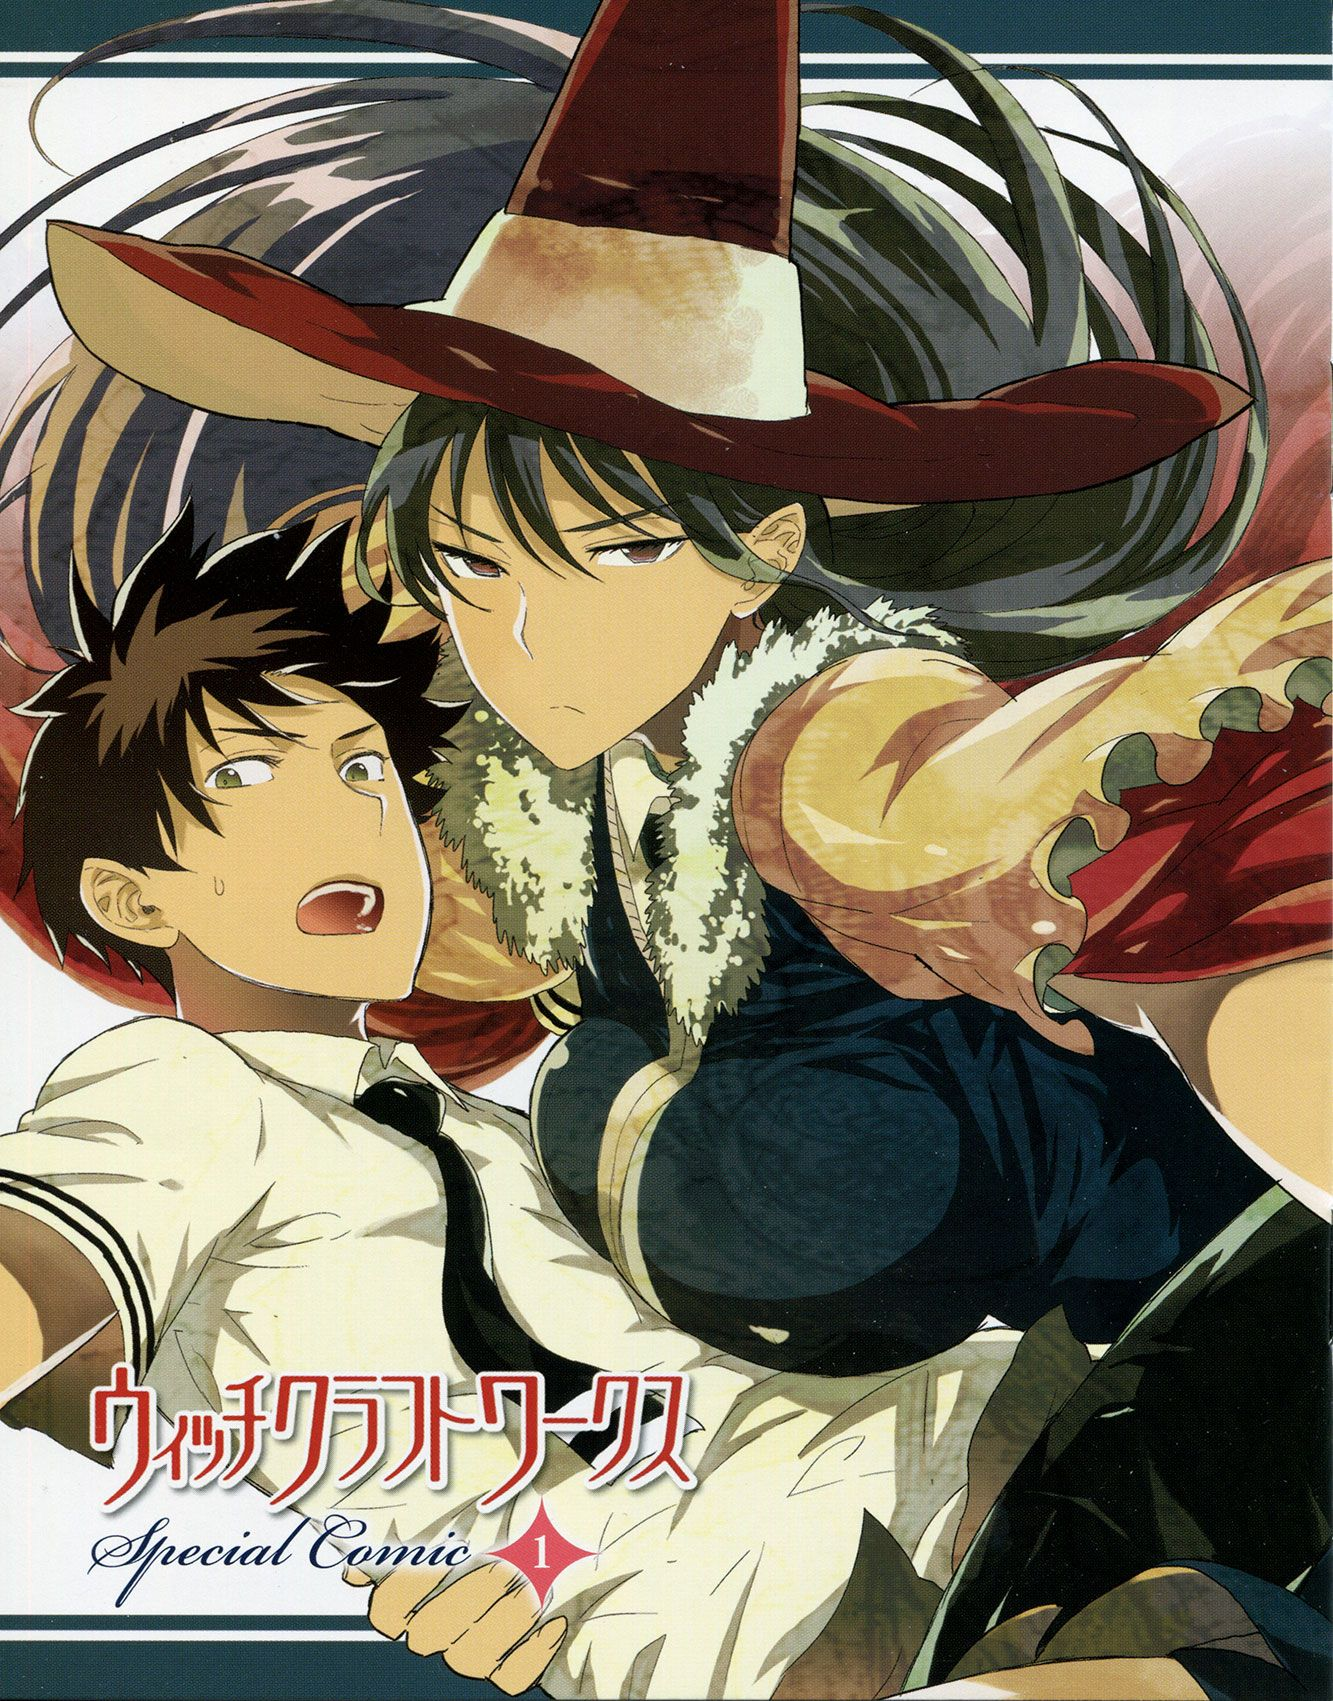 Witch Craft Works Witch craft works, Witchcraft, Anime